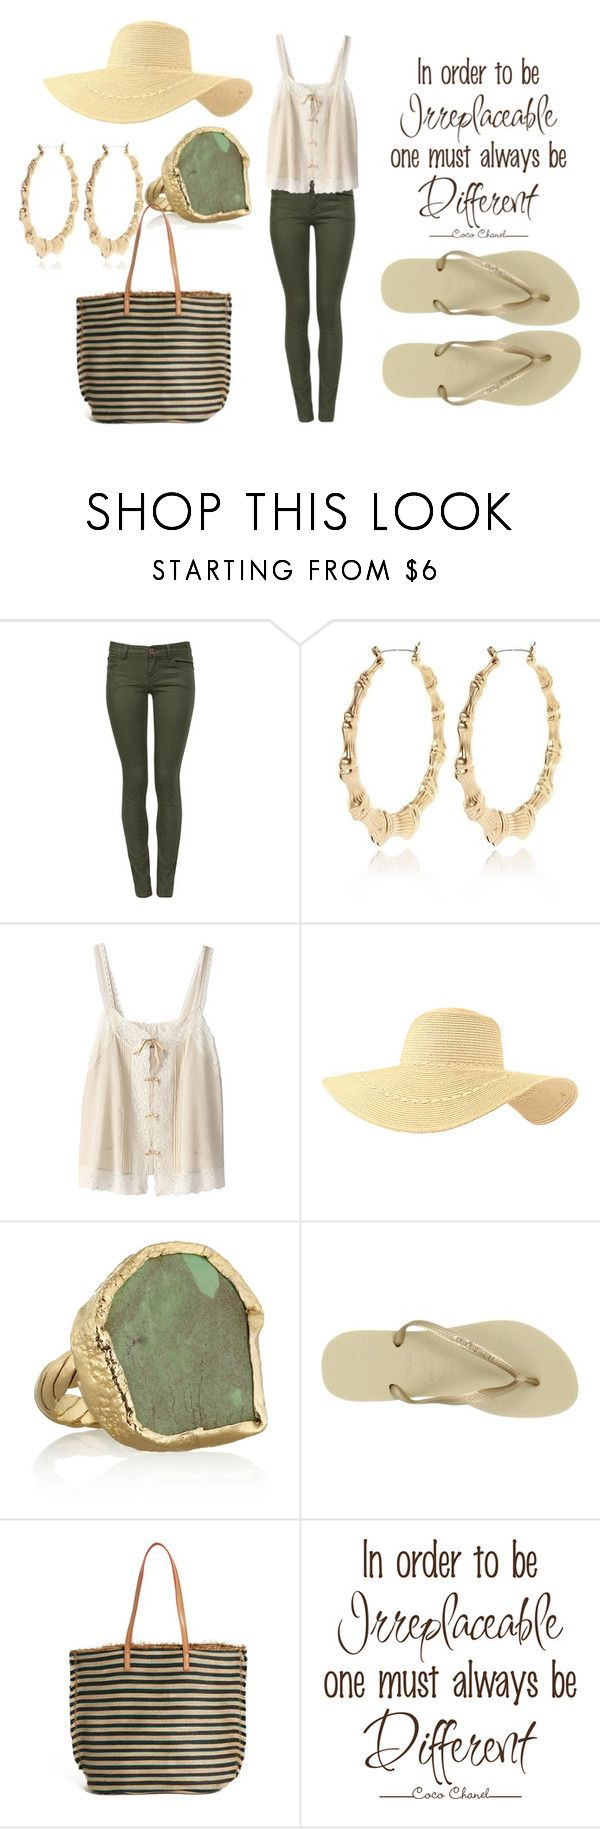 """""""Be Different"""" by jhajny101 ❤ liked on Polyvore featuring Parisian, River Island, Bilitis dix-sept ans, Dara Ettinger, Havaianas, MANGO, Chanel, FlipFlops, floppyhat and hoops"""